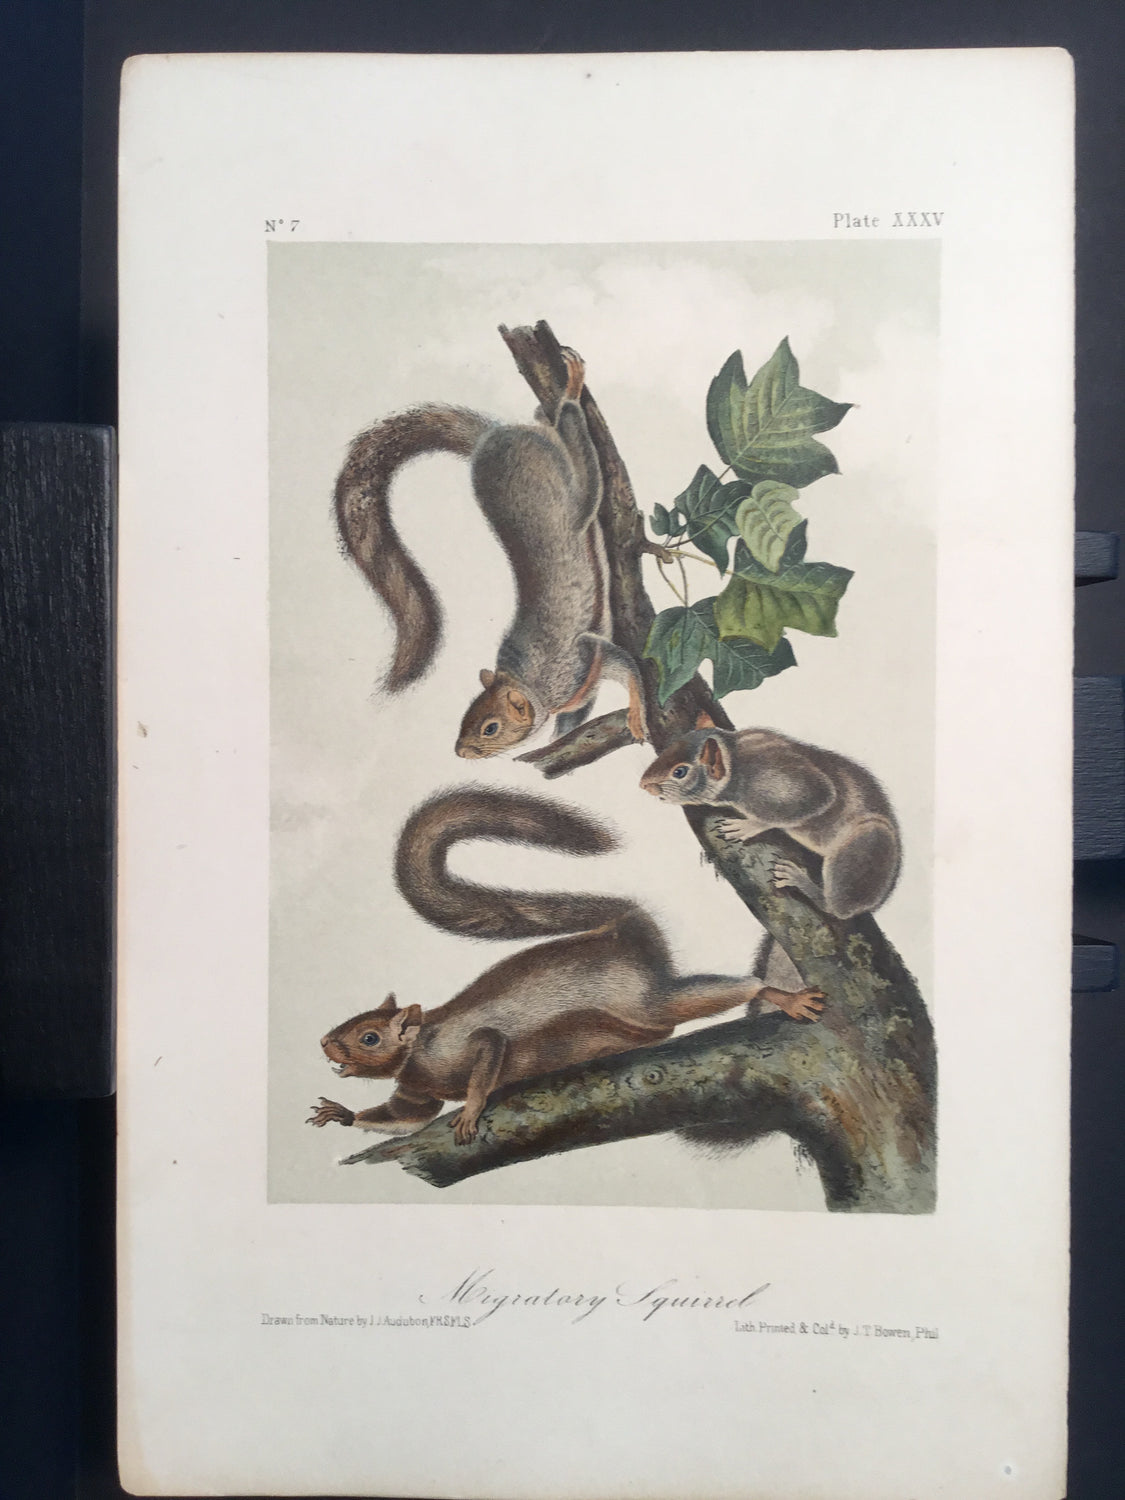 Lord-Hopkins Collection - Migratory Squirrel